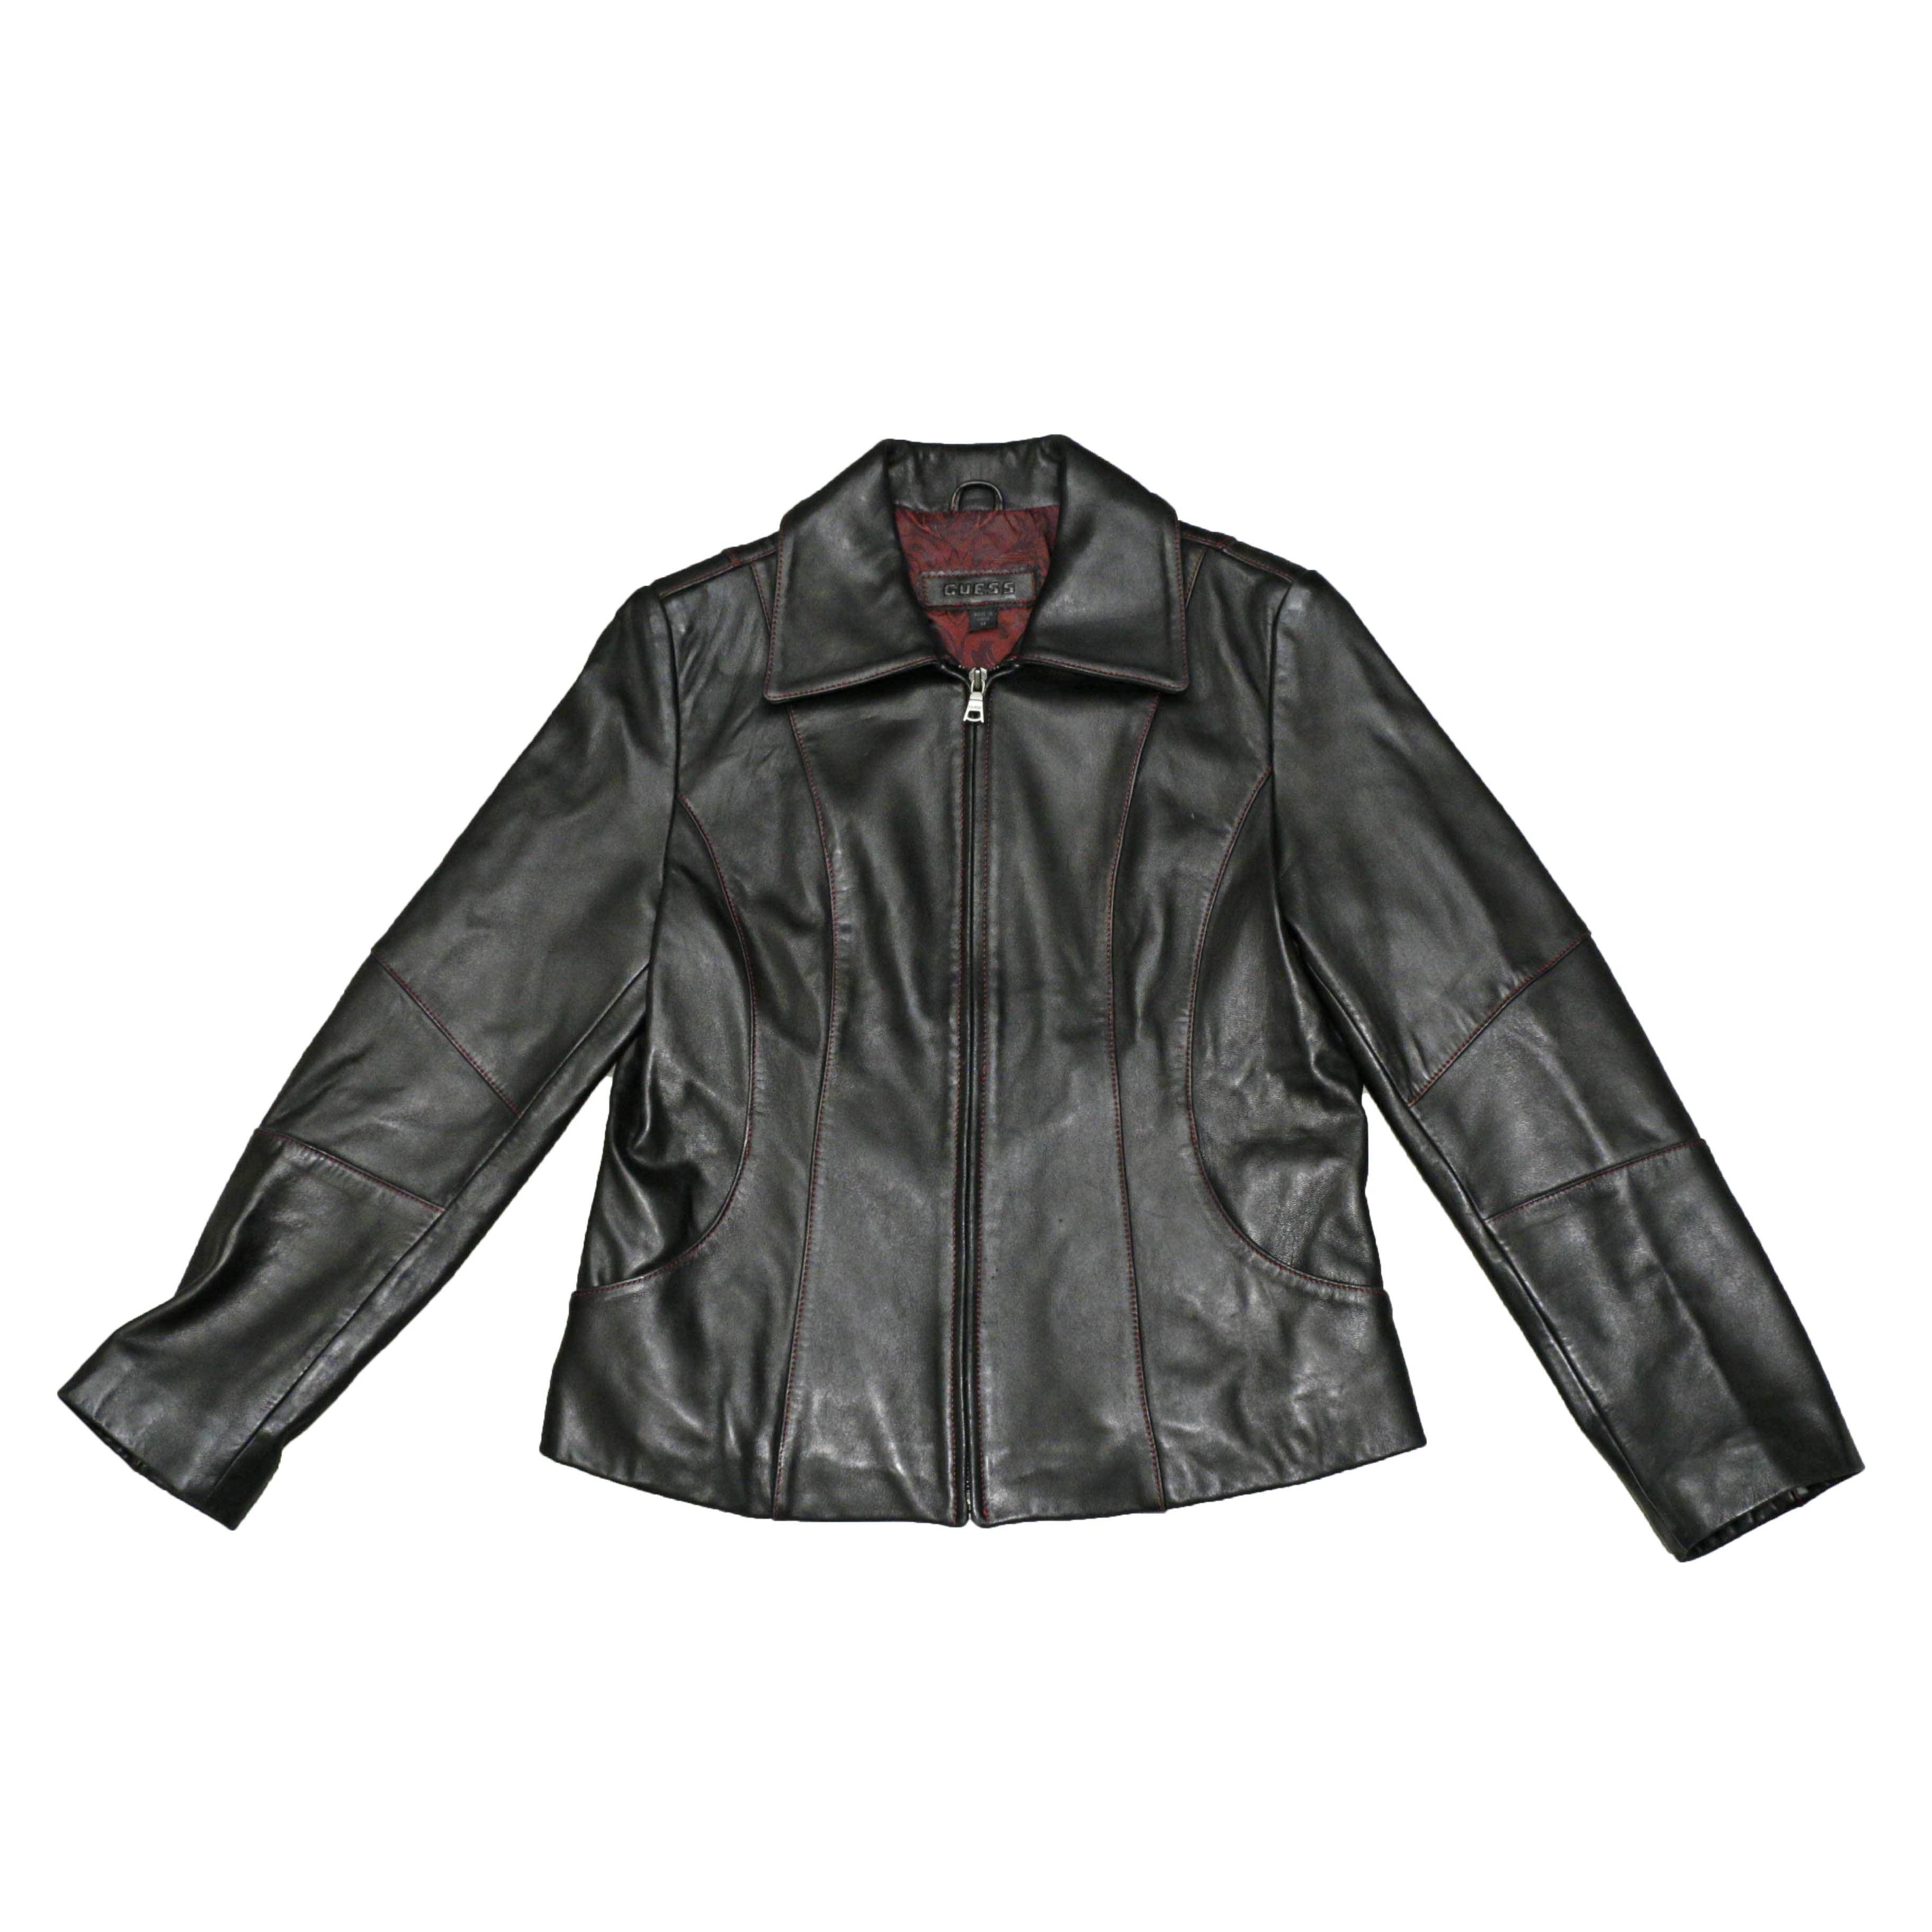 GUESS ShortLengthLeatherJacket